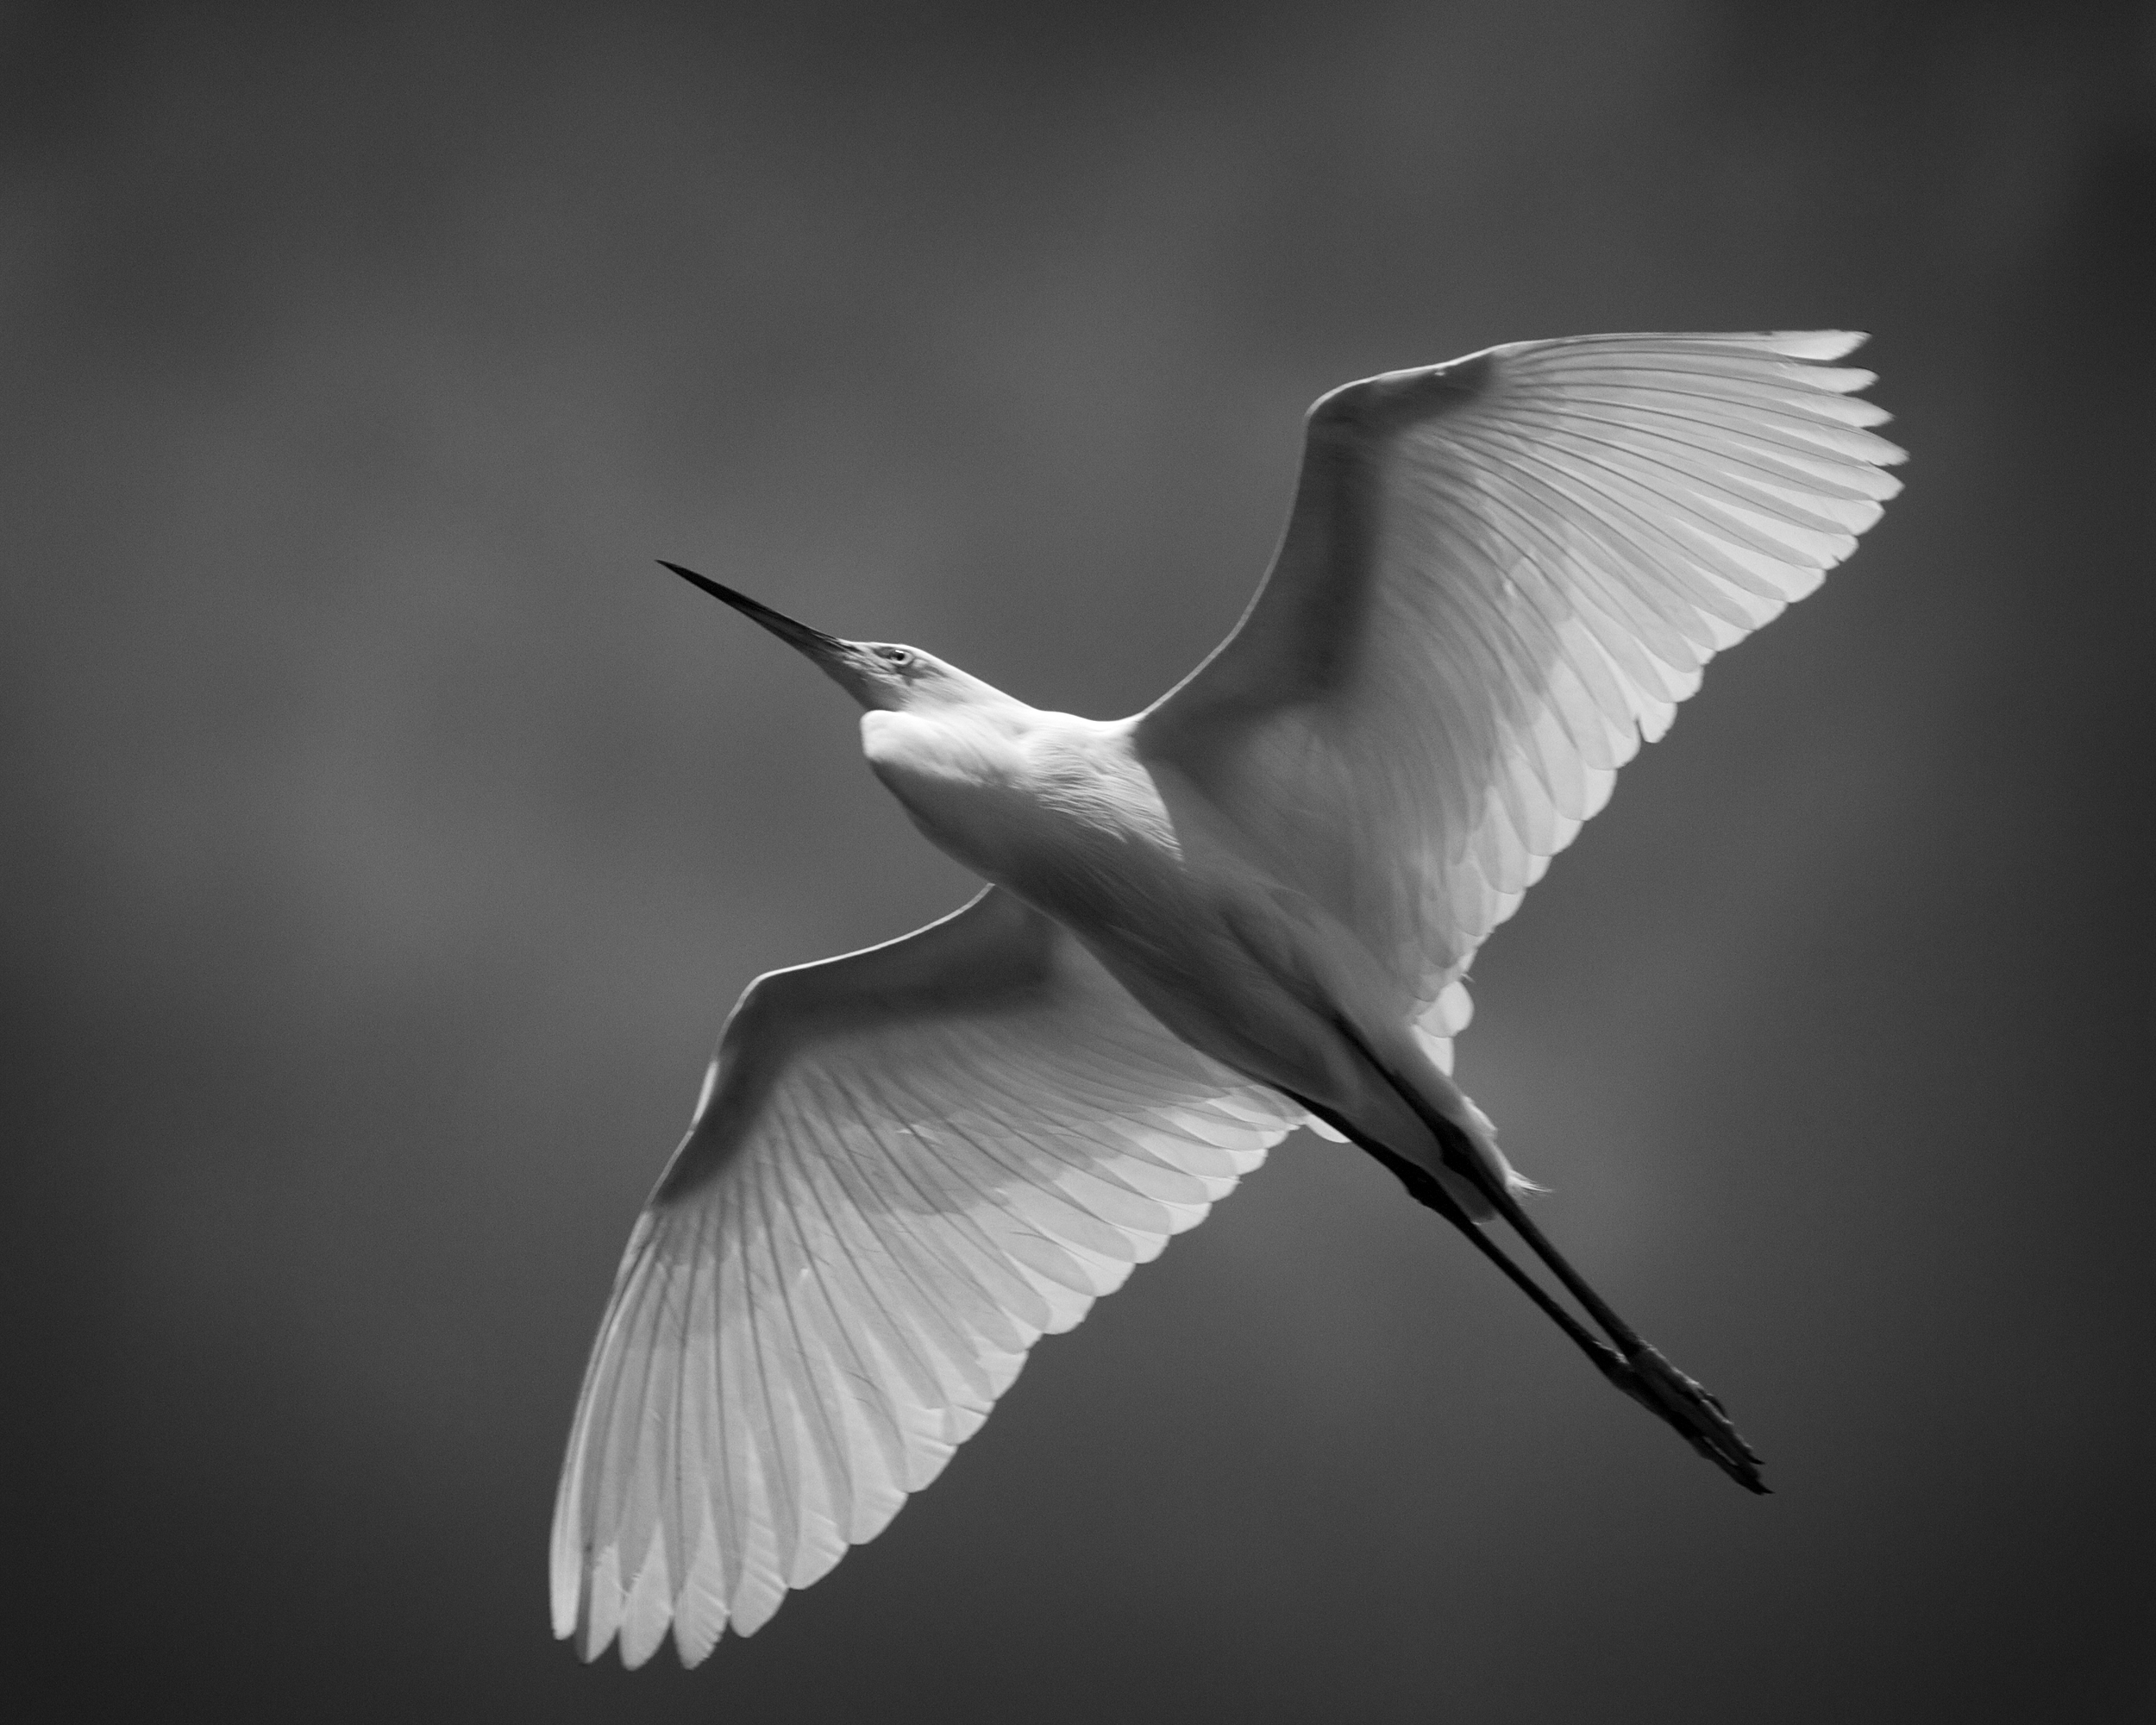 Snowy Egret glides overhead, the bright sunlight gives it an X-Ray appearance